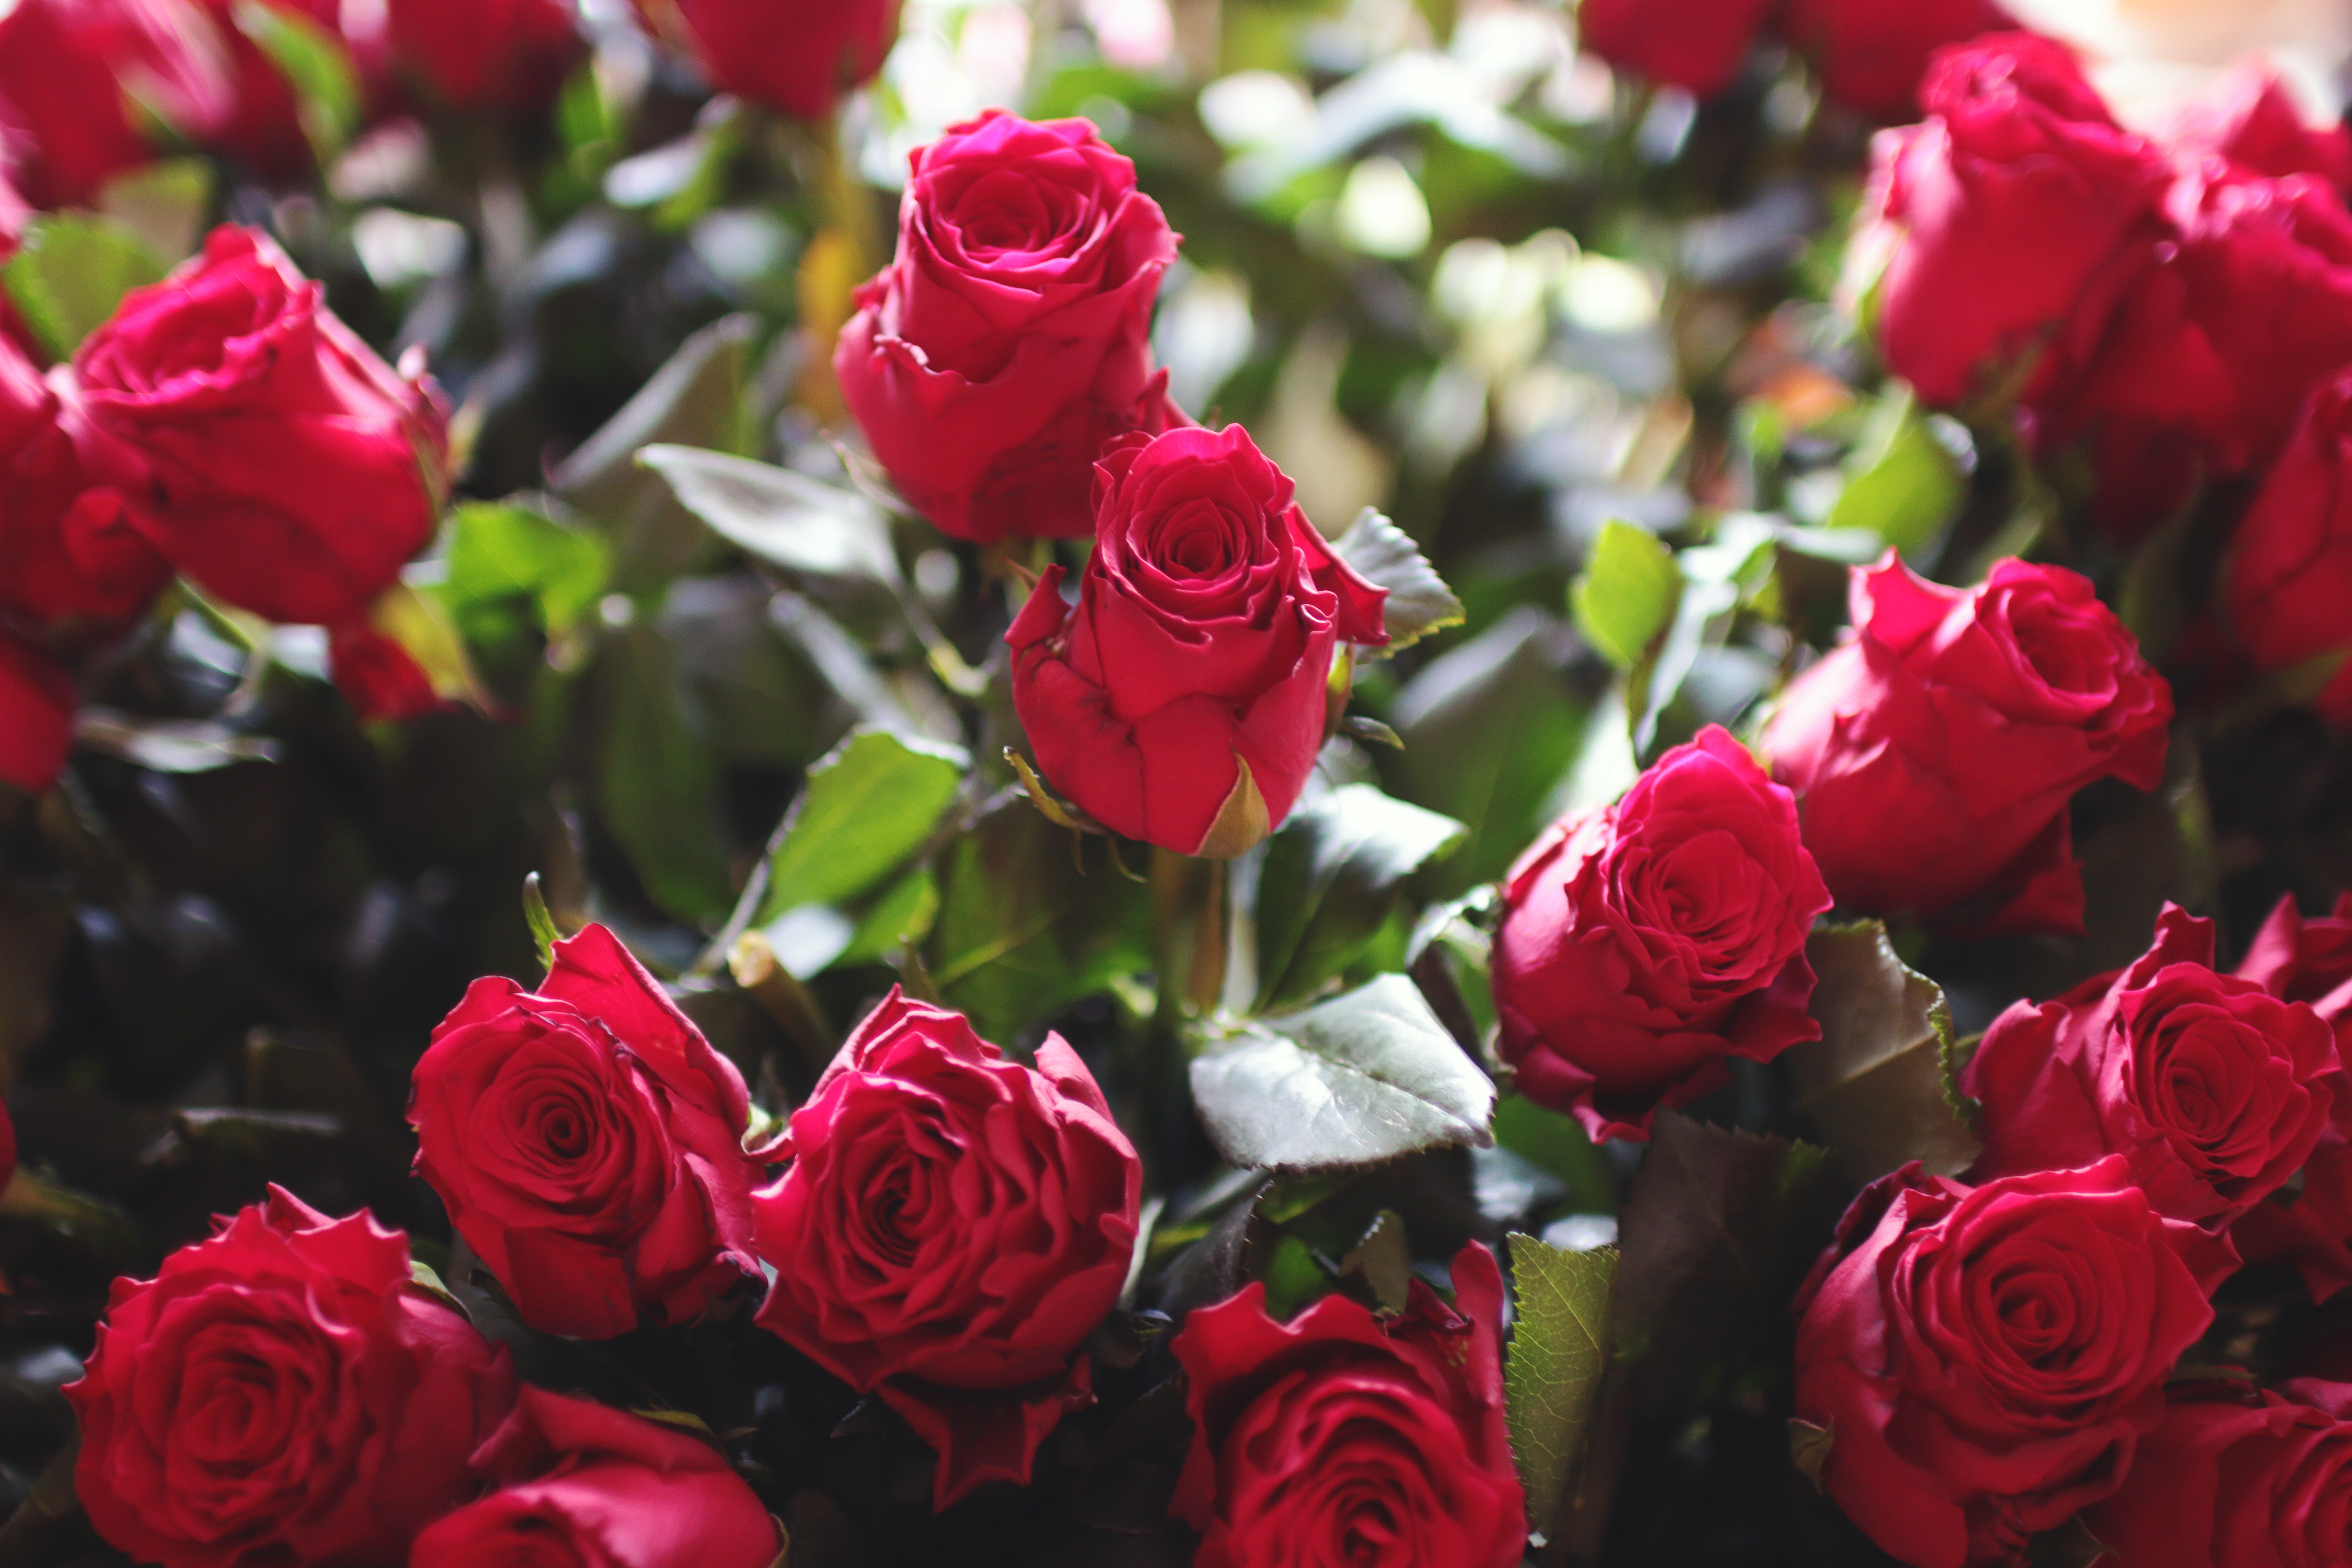 https://static.pexels.com/photos/4825/red-love-romantic-flowers.jpg